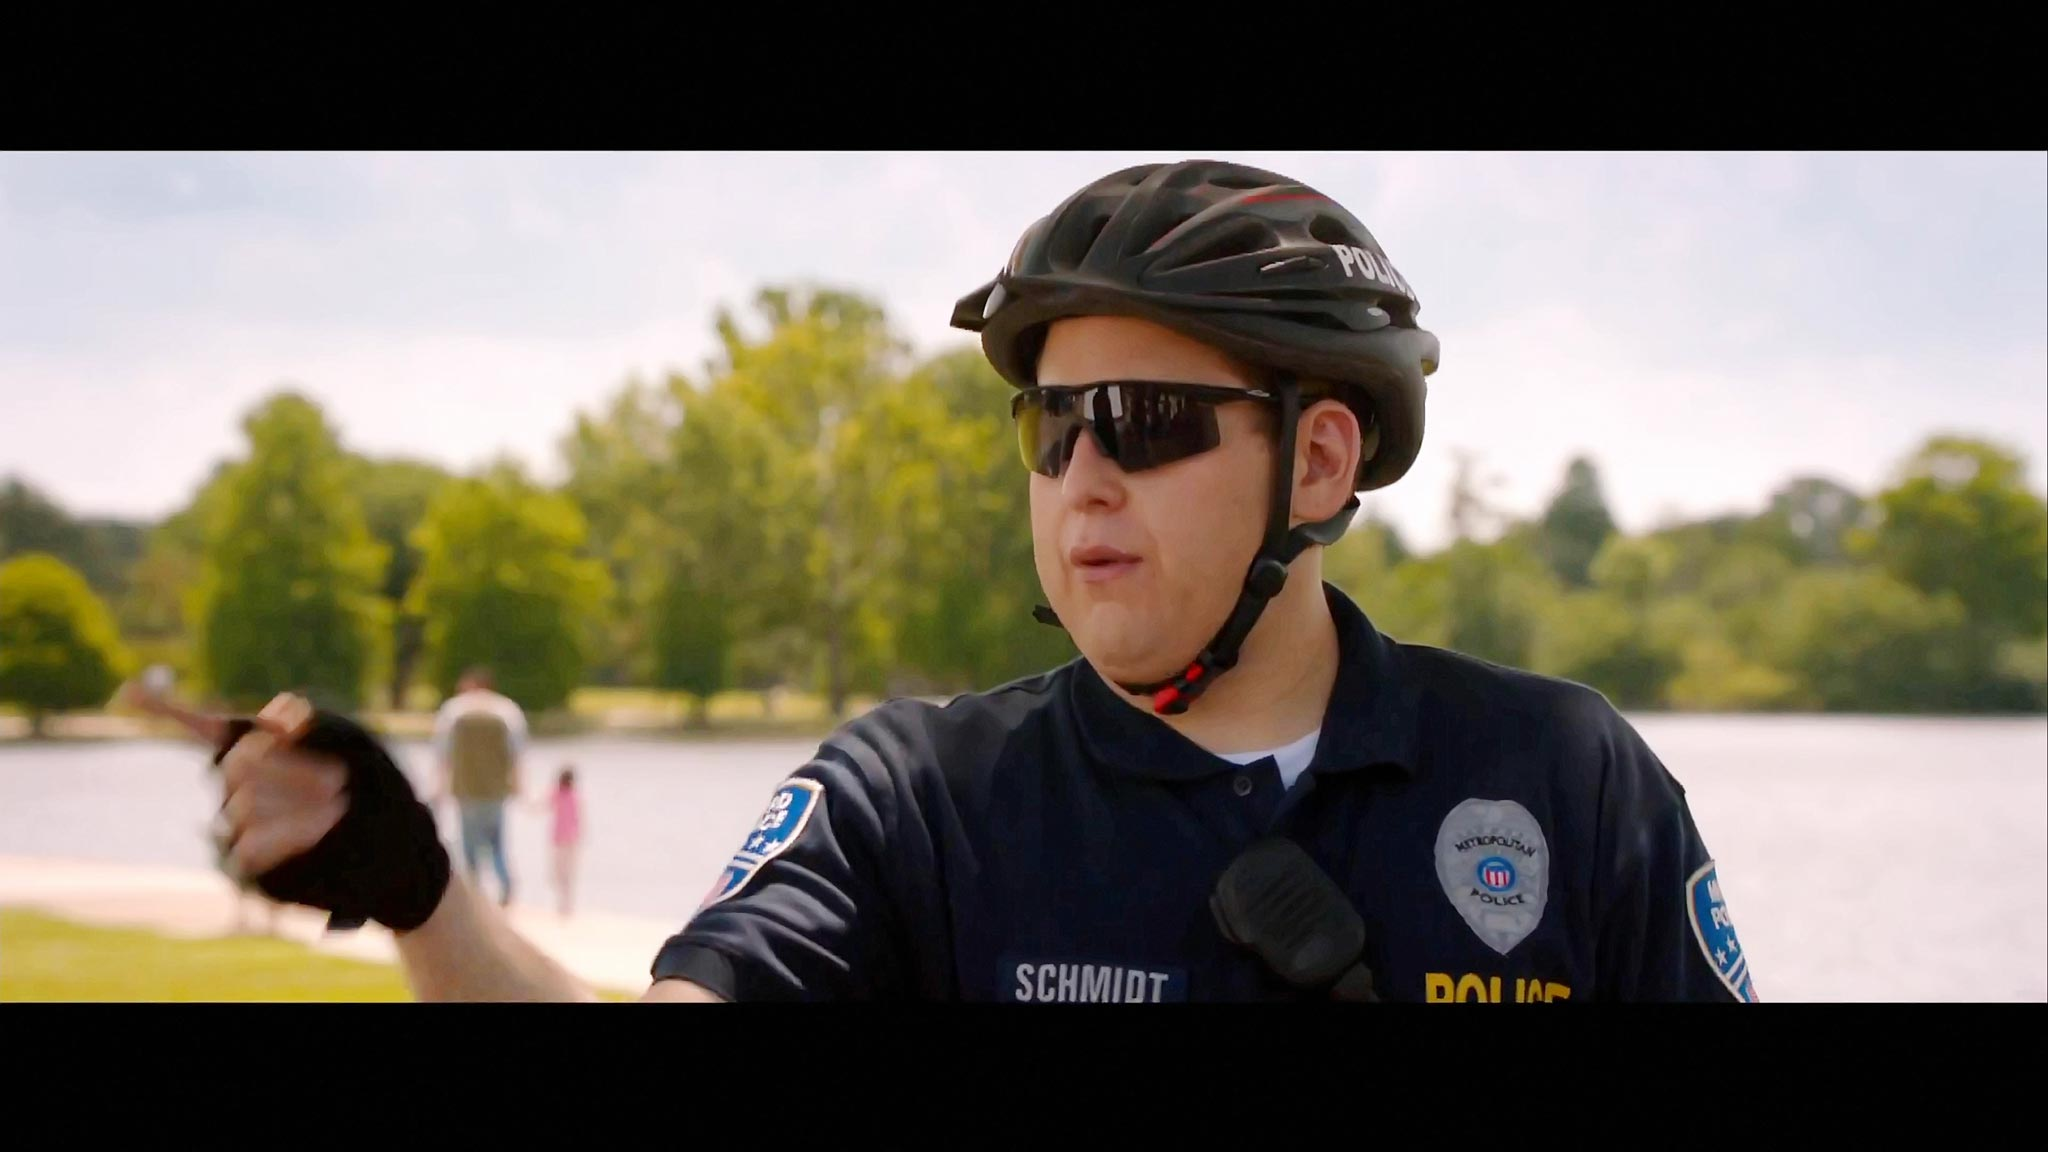 21 JUMP STREET Red Band Trailer Starring Jonah Hill ...21 Jump Street Wallpaper Jonah Hill